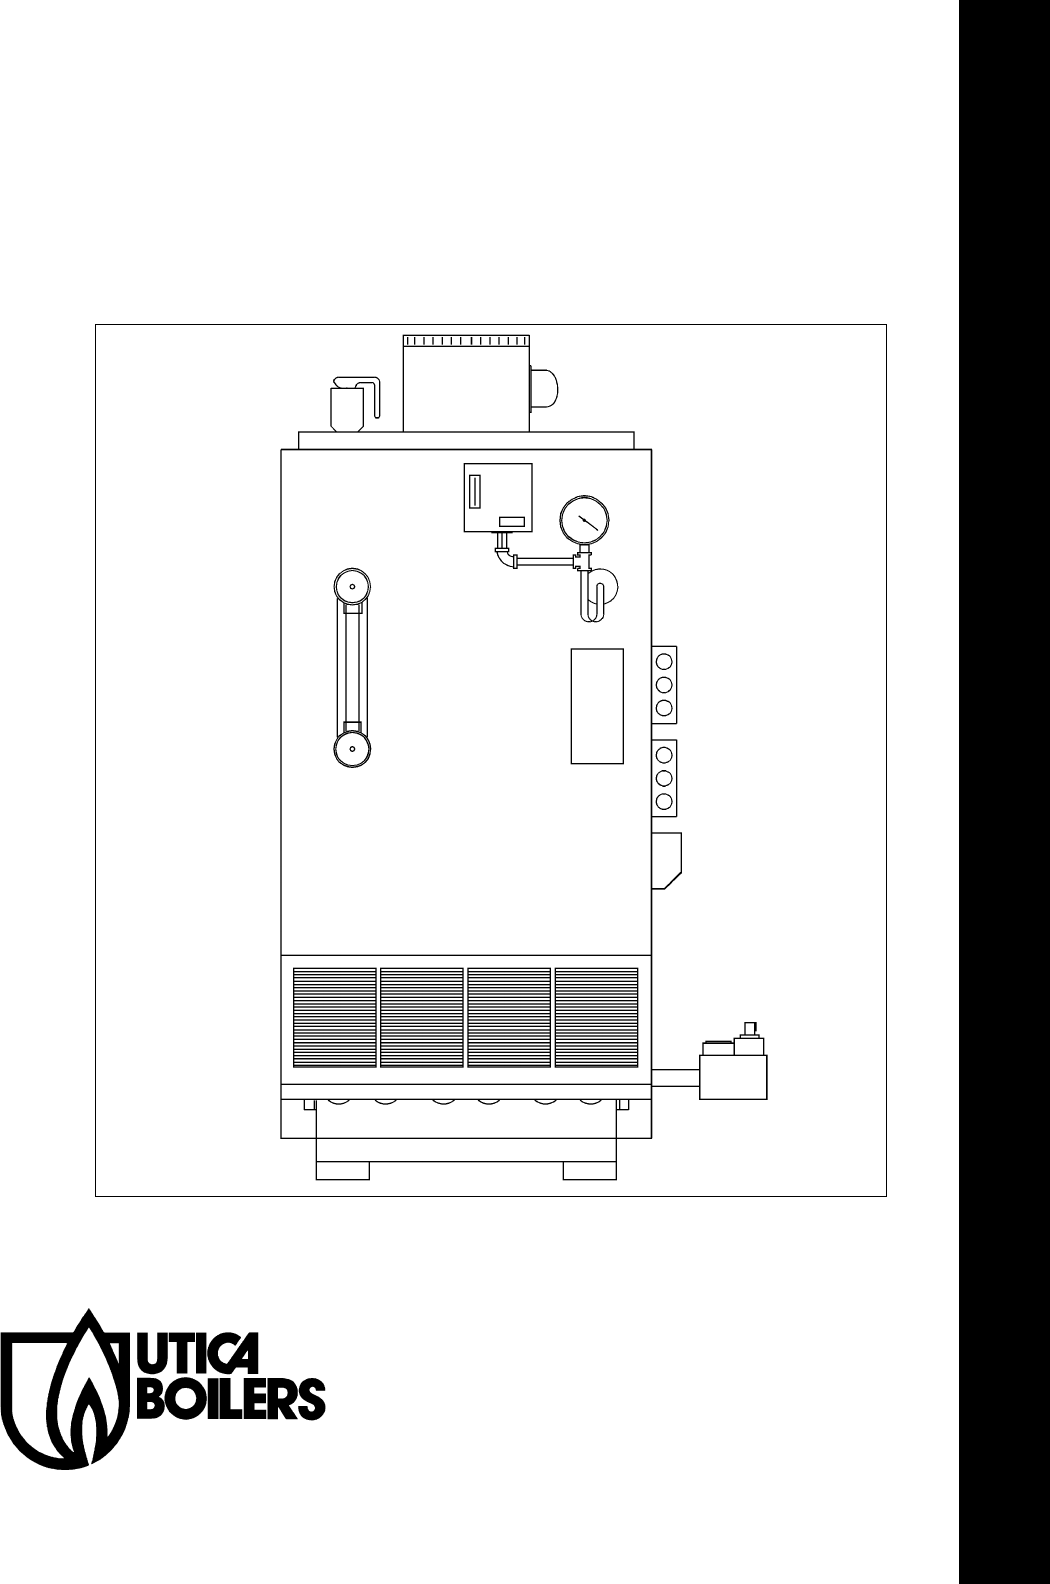 hight resolution of images of utica steam boiler manual